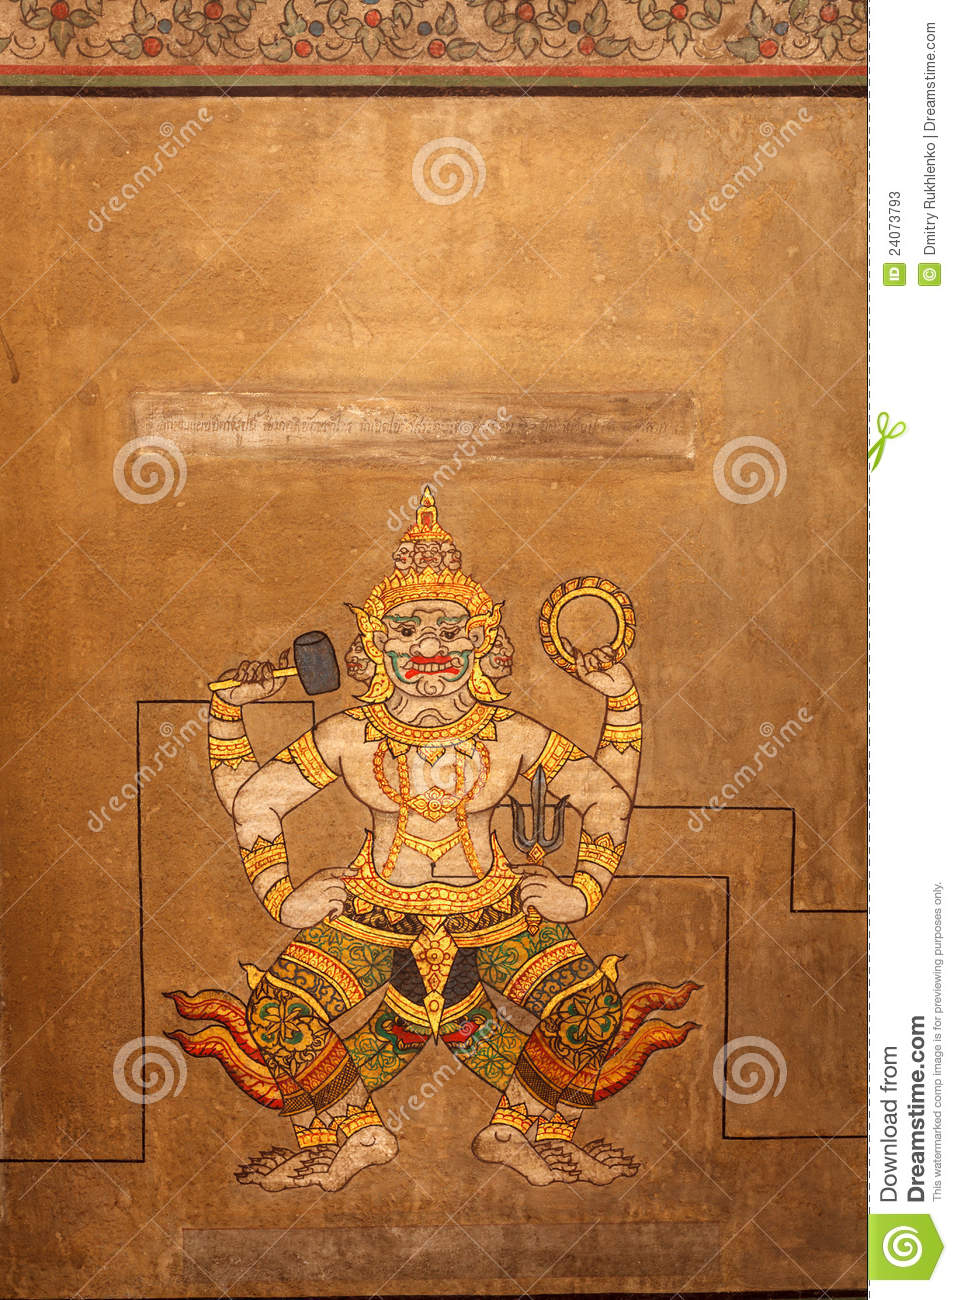 Demon on mural painting at wat pho bangkok stock photos for Examples of mural painting